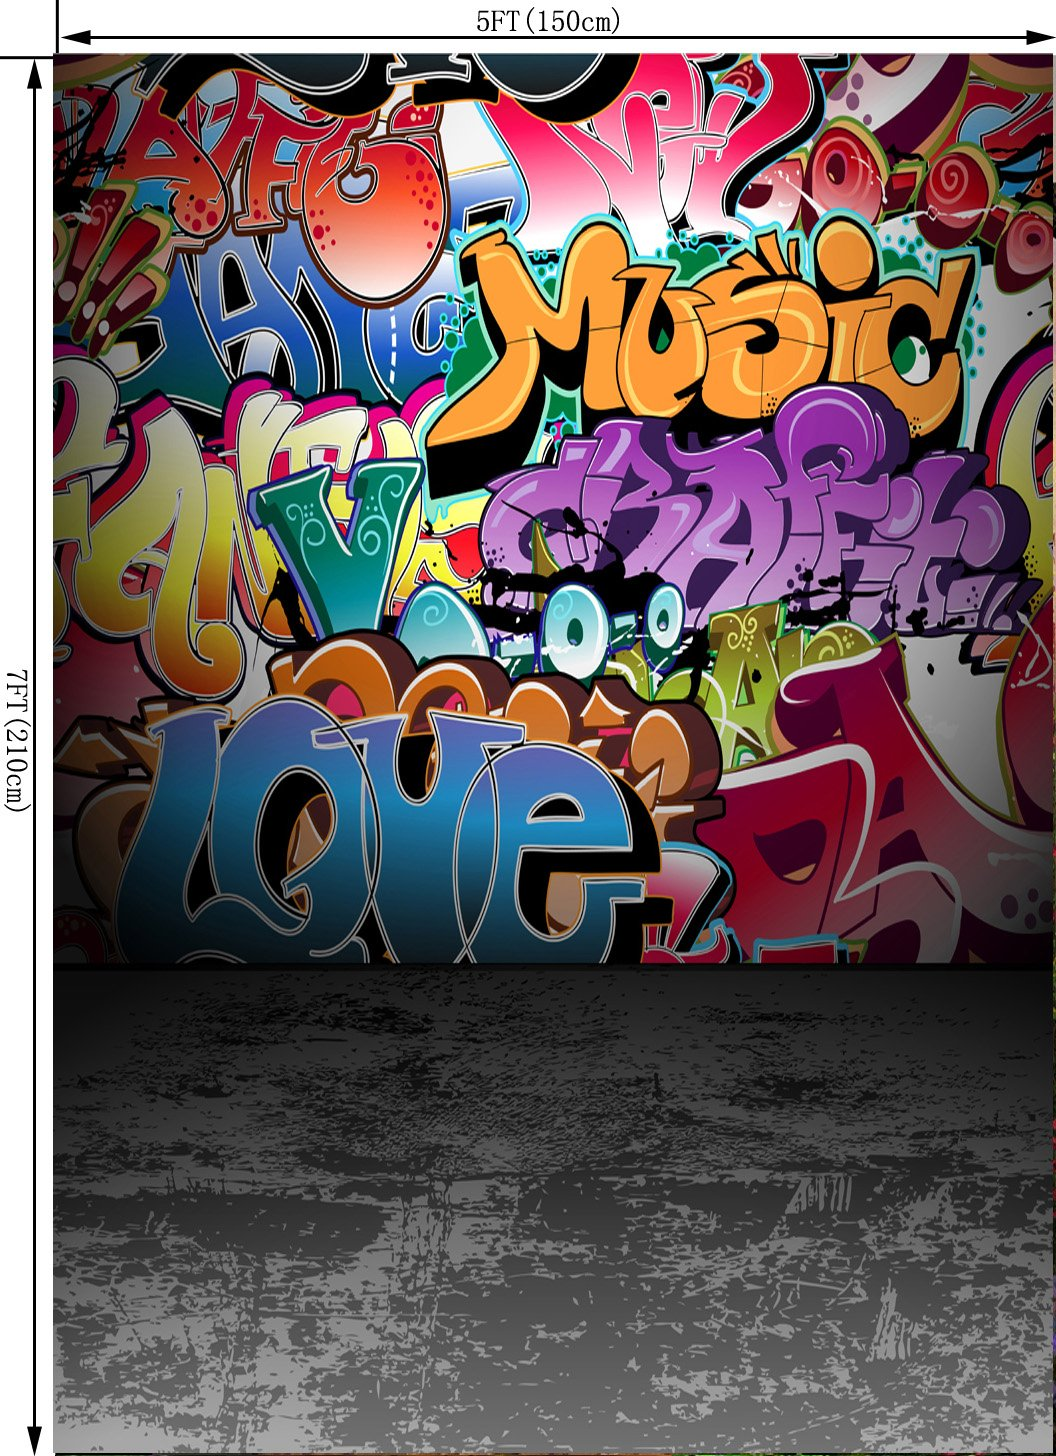 OUYIDA 5X7FT Wall Graffiti Style Pictorial Cloth Photography Background Computer-Printed Vinyl Backdrop TG01A by OUYIDA (Image #2)